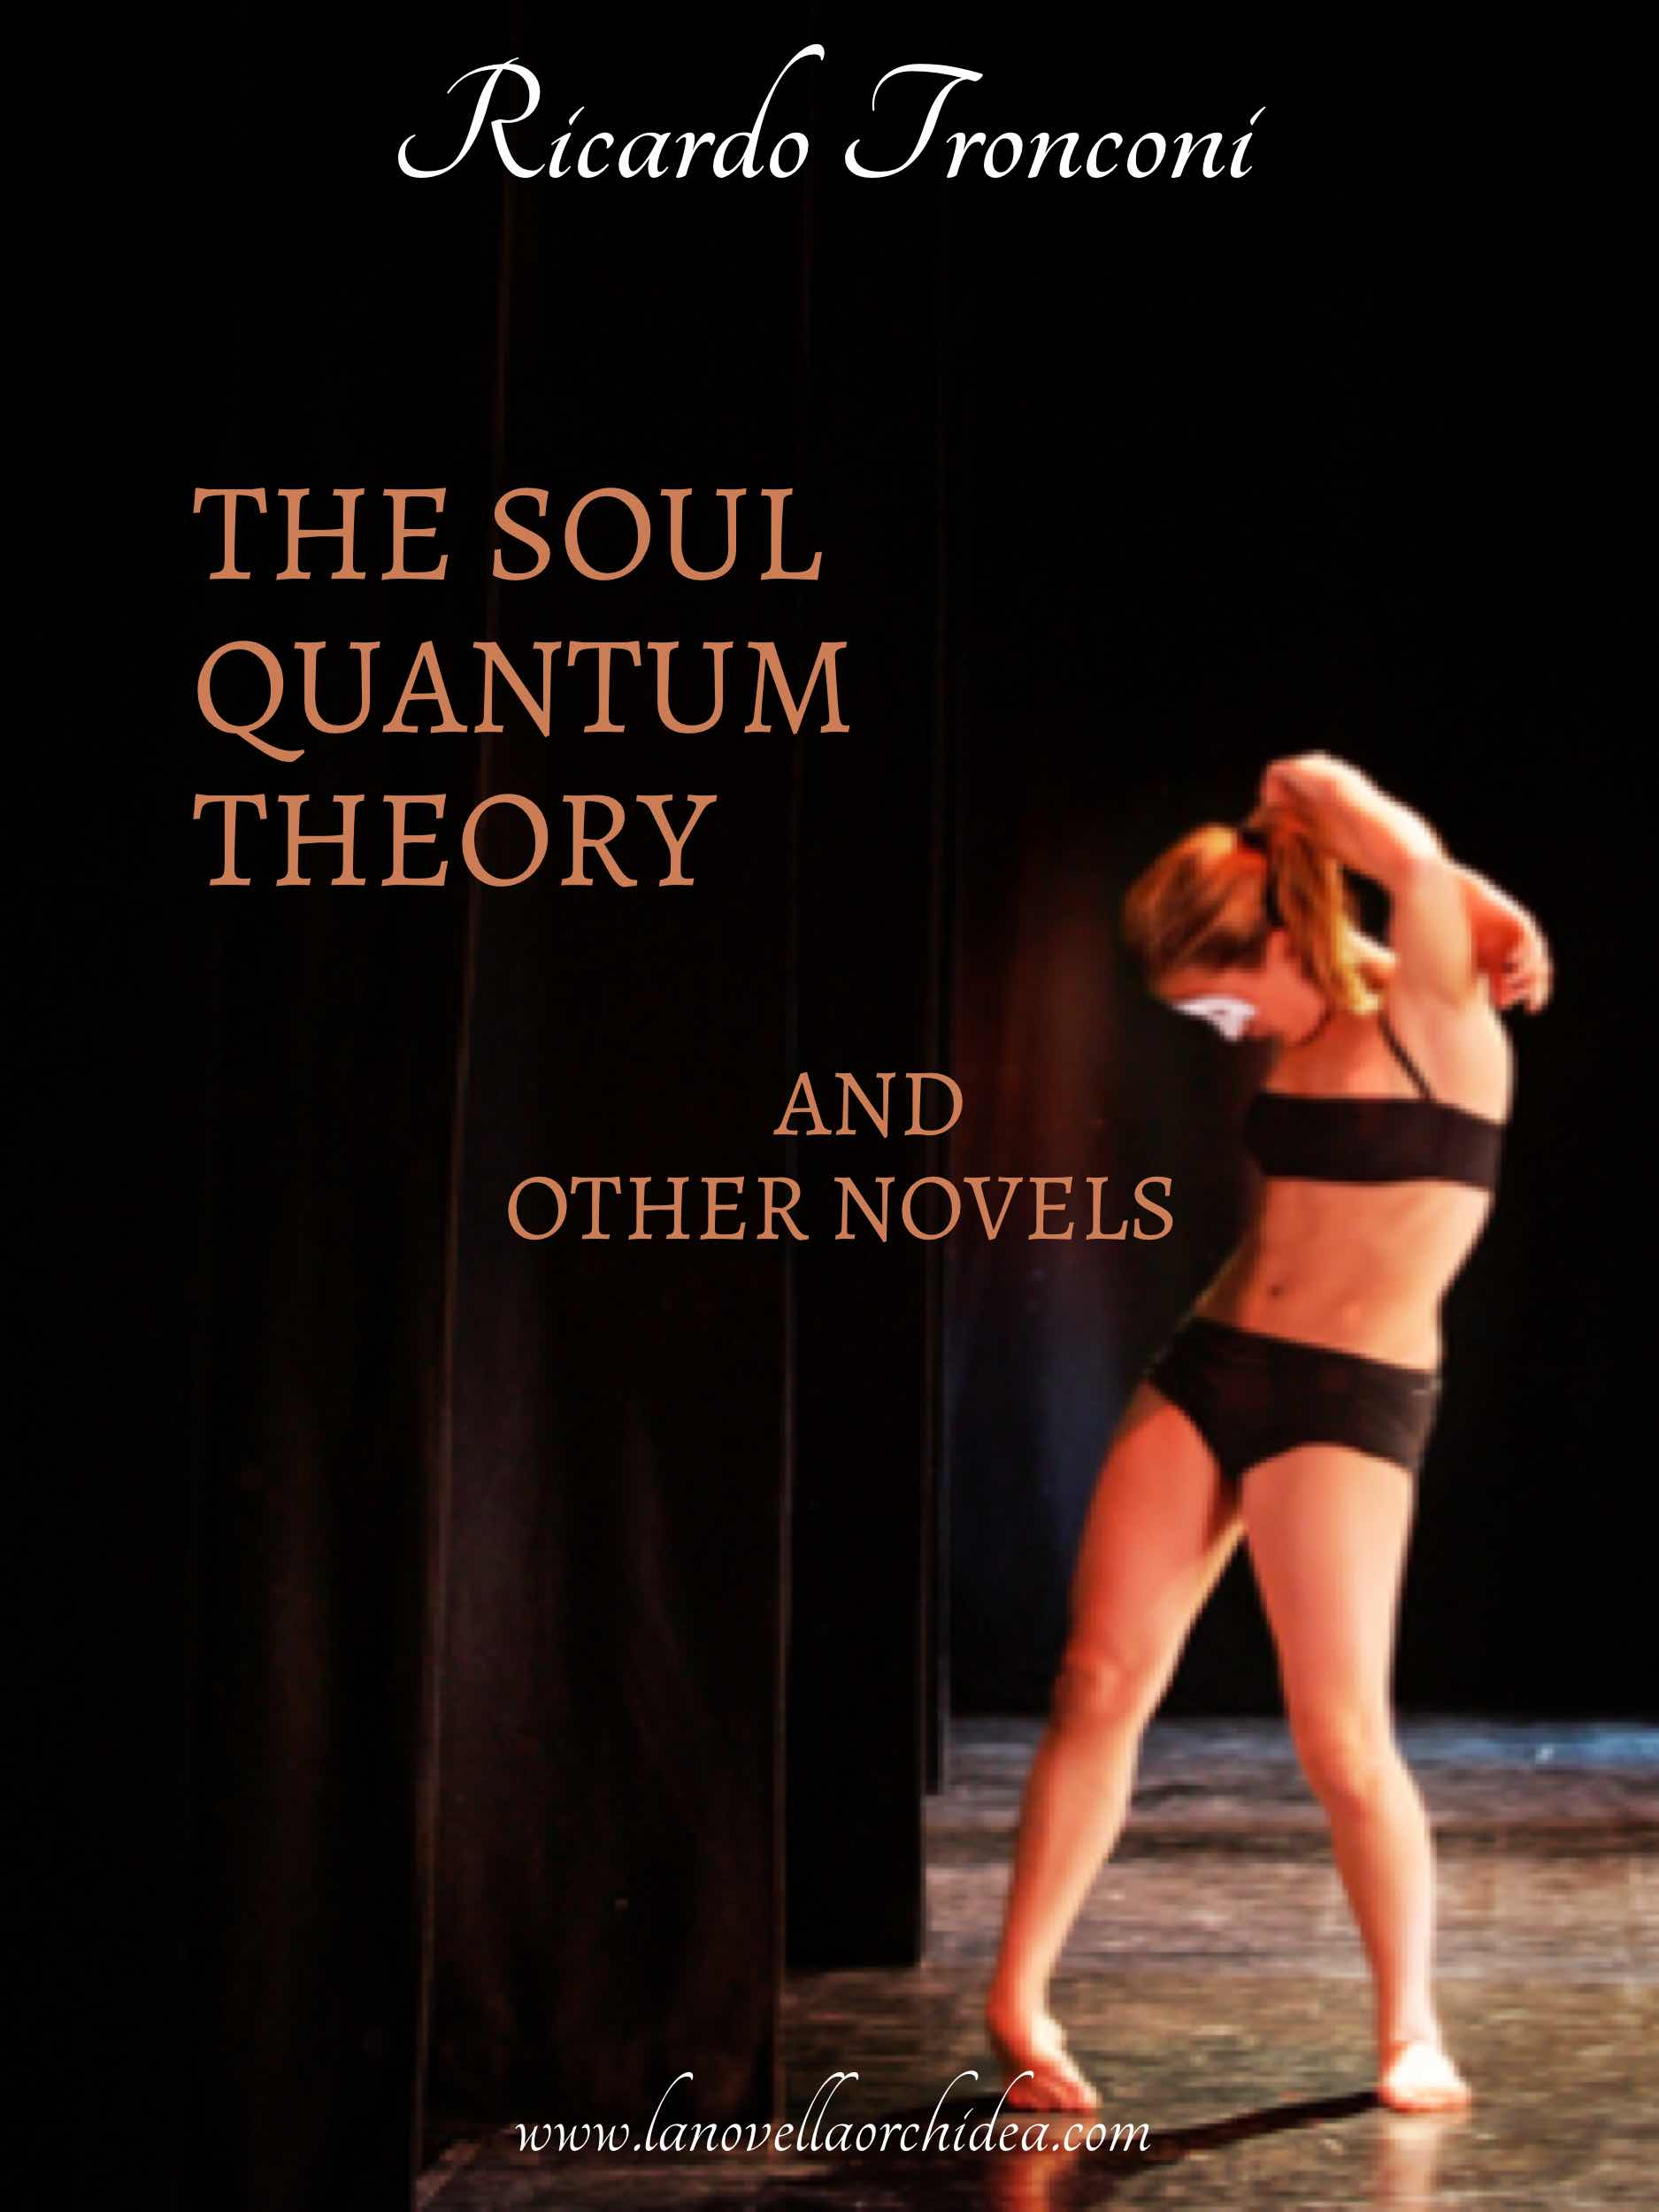 The soul quantum theory and other novels